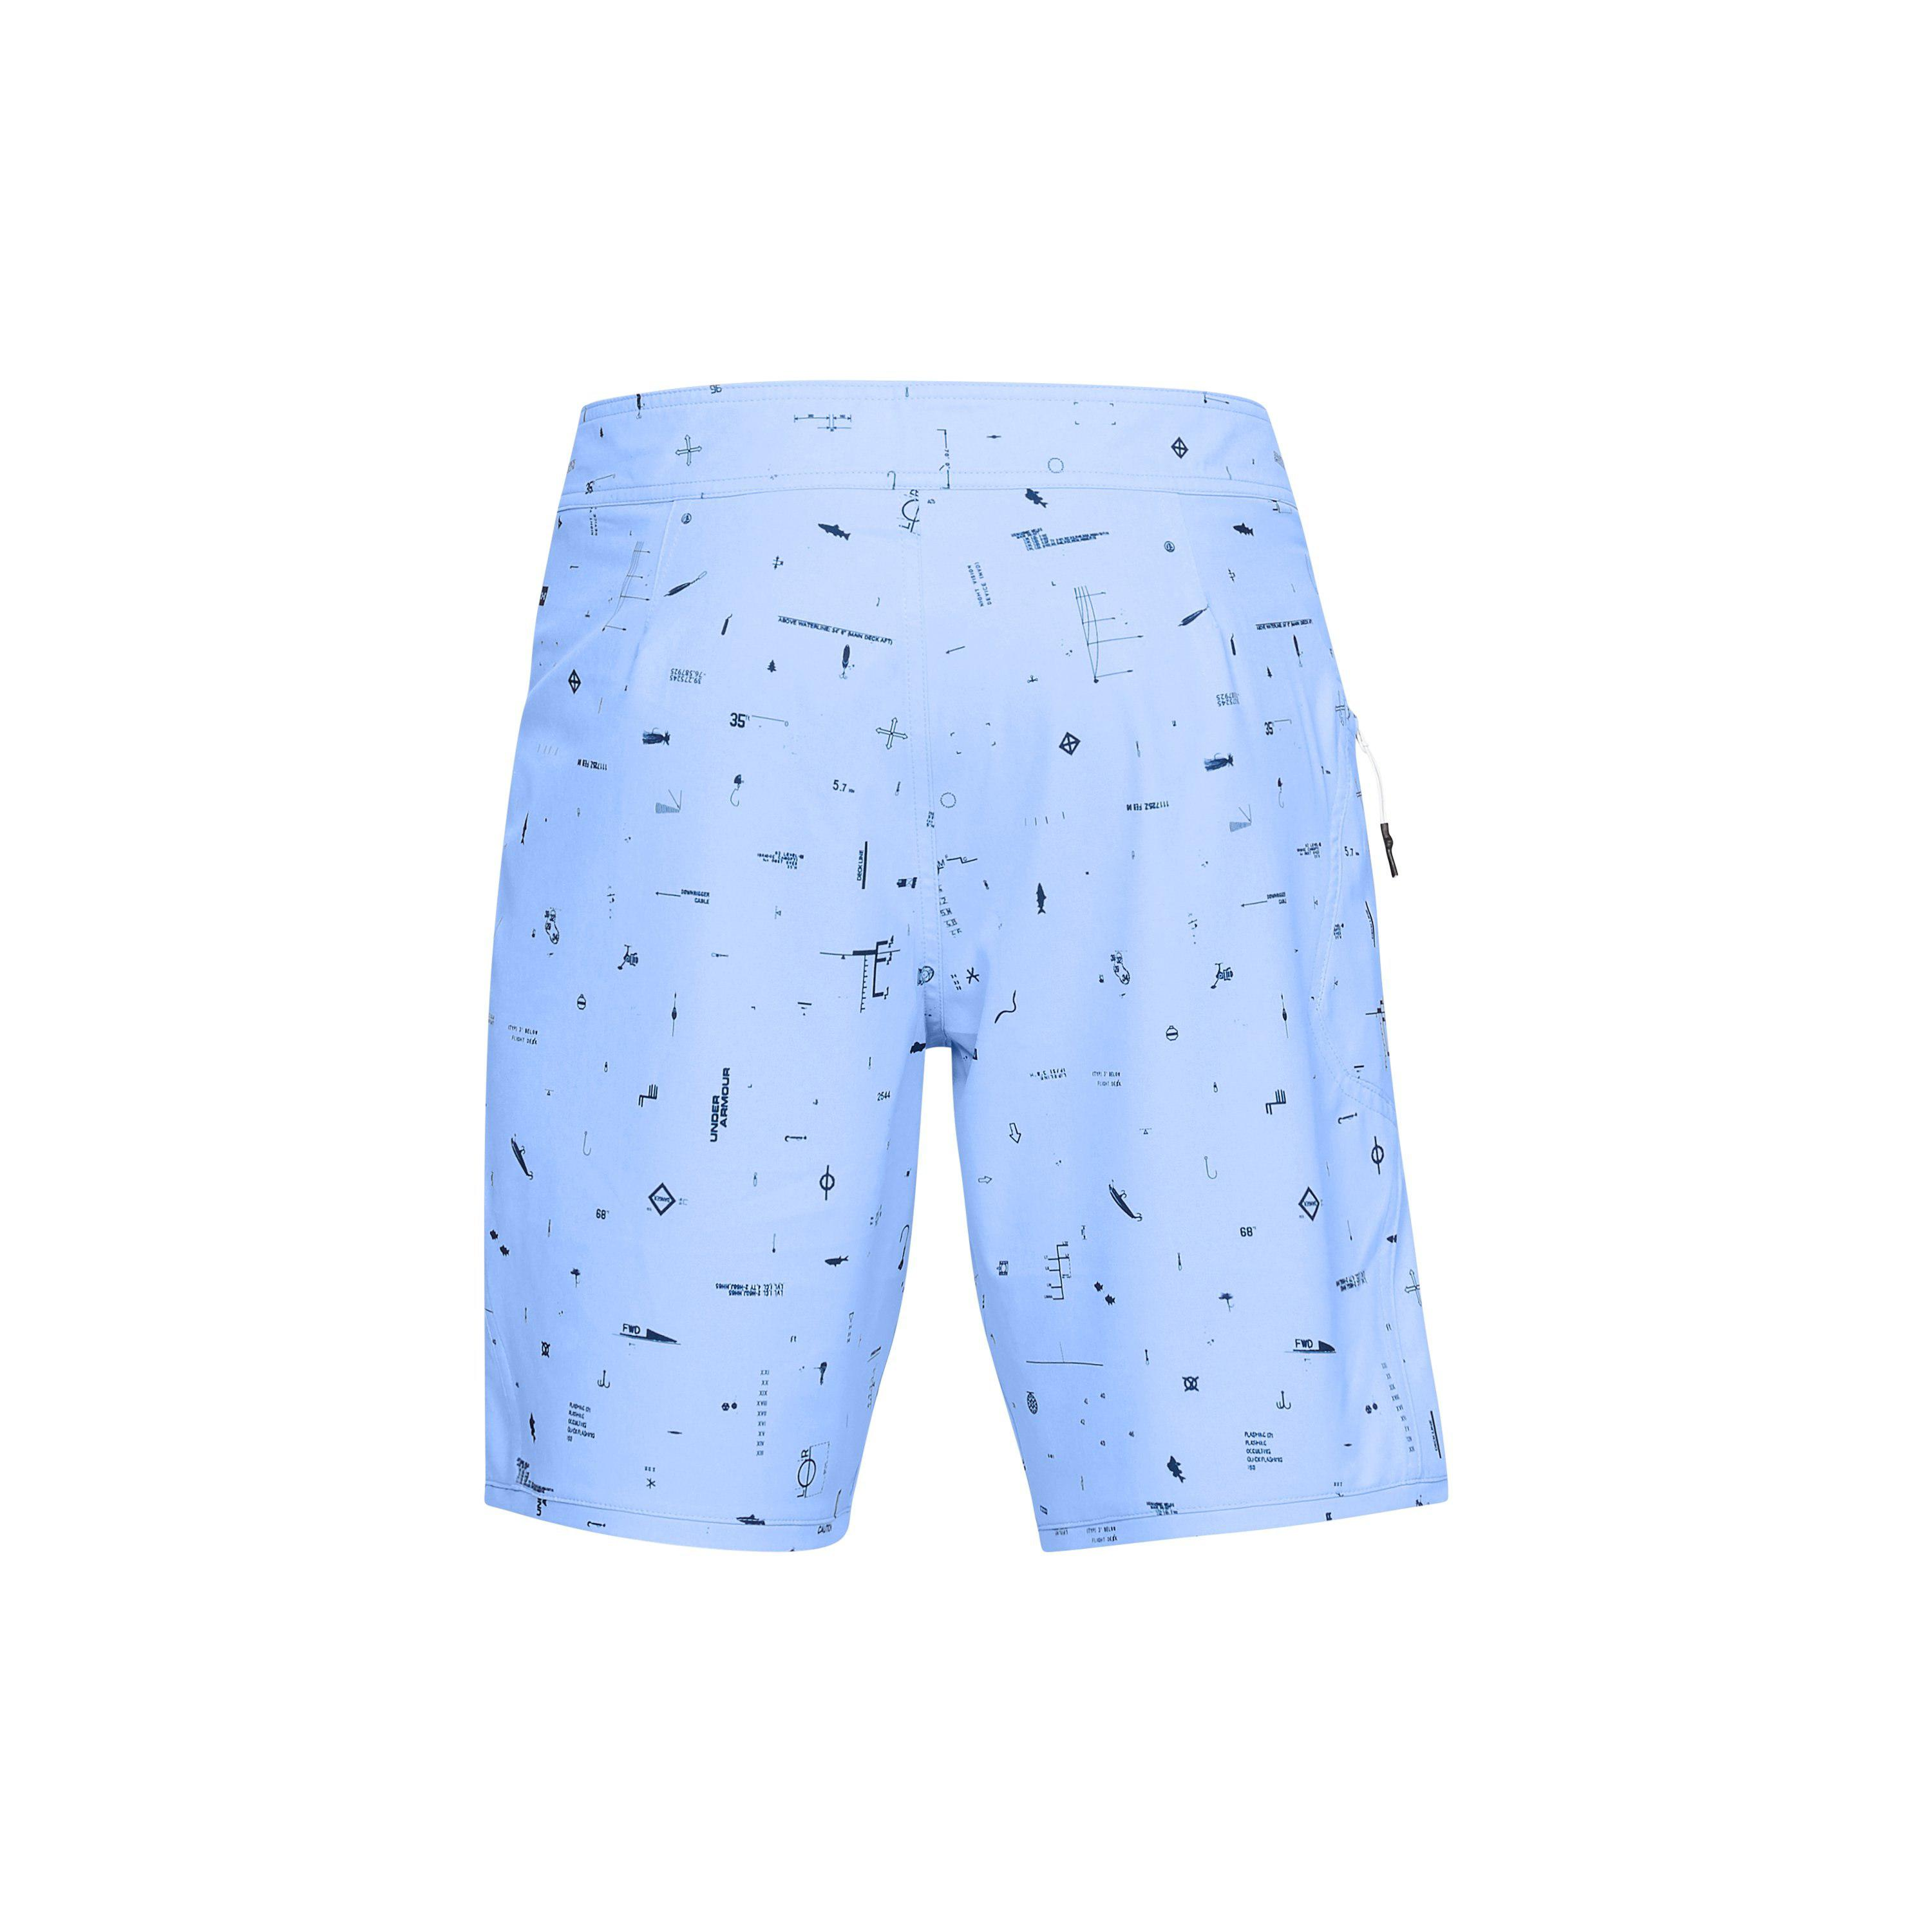 a15f56e7034c4 Lyst - Under Armour Men's Ua Tide Chaser Boardshorts in Blue for Men